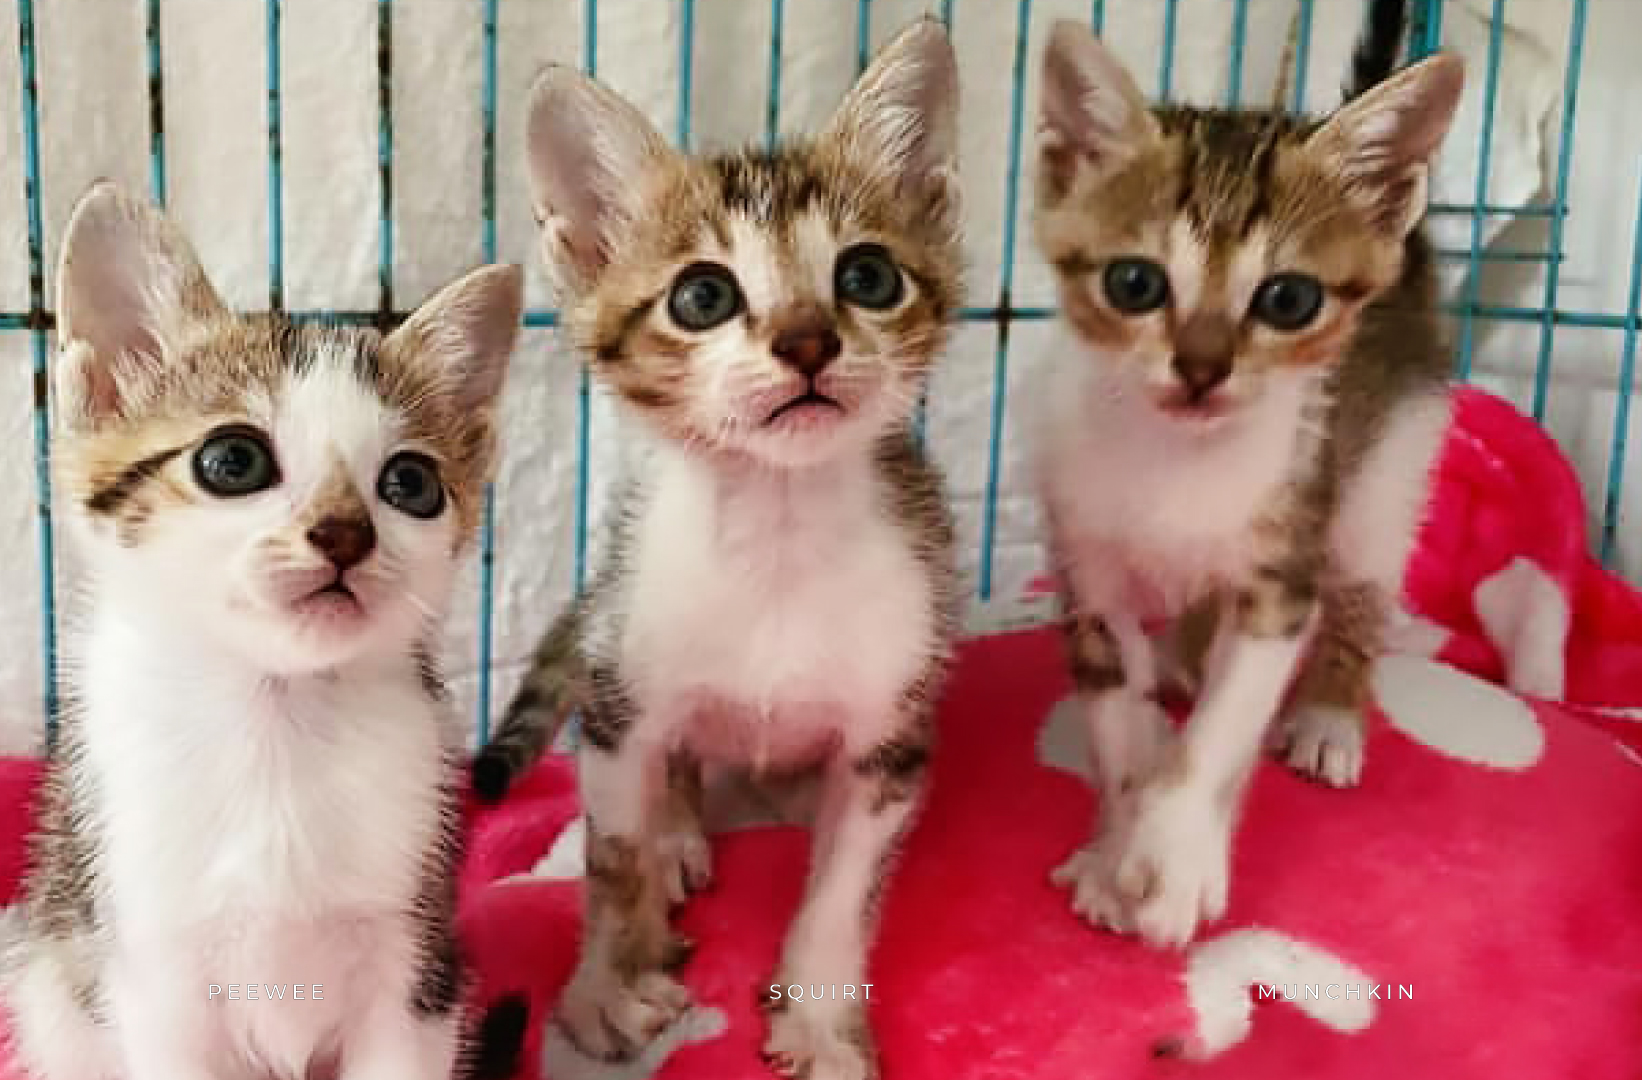 Adoption Tails: Peewee, Squirt and Munchkin